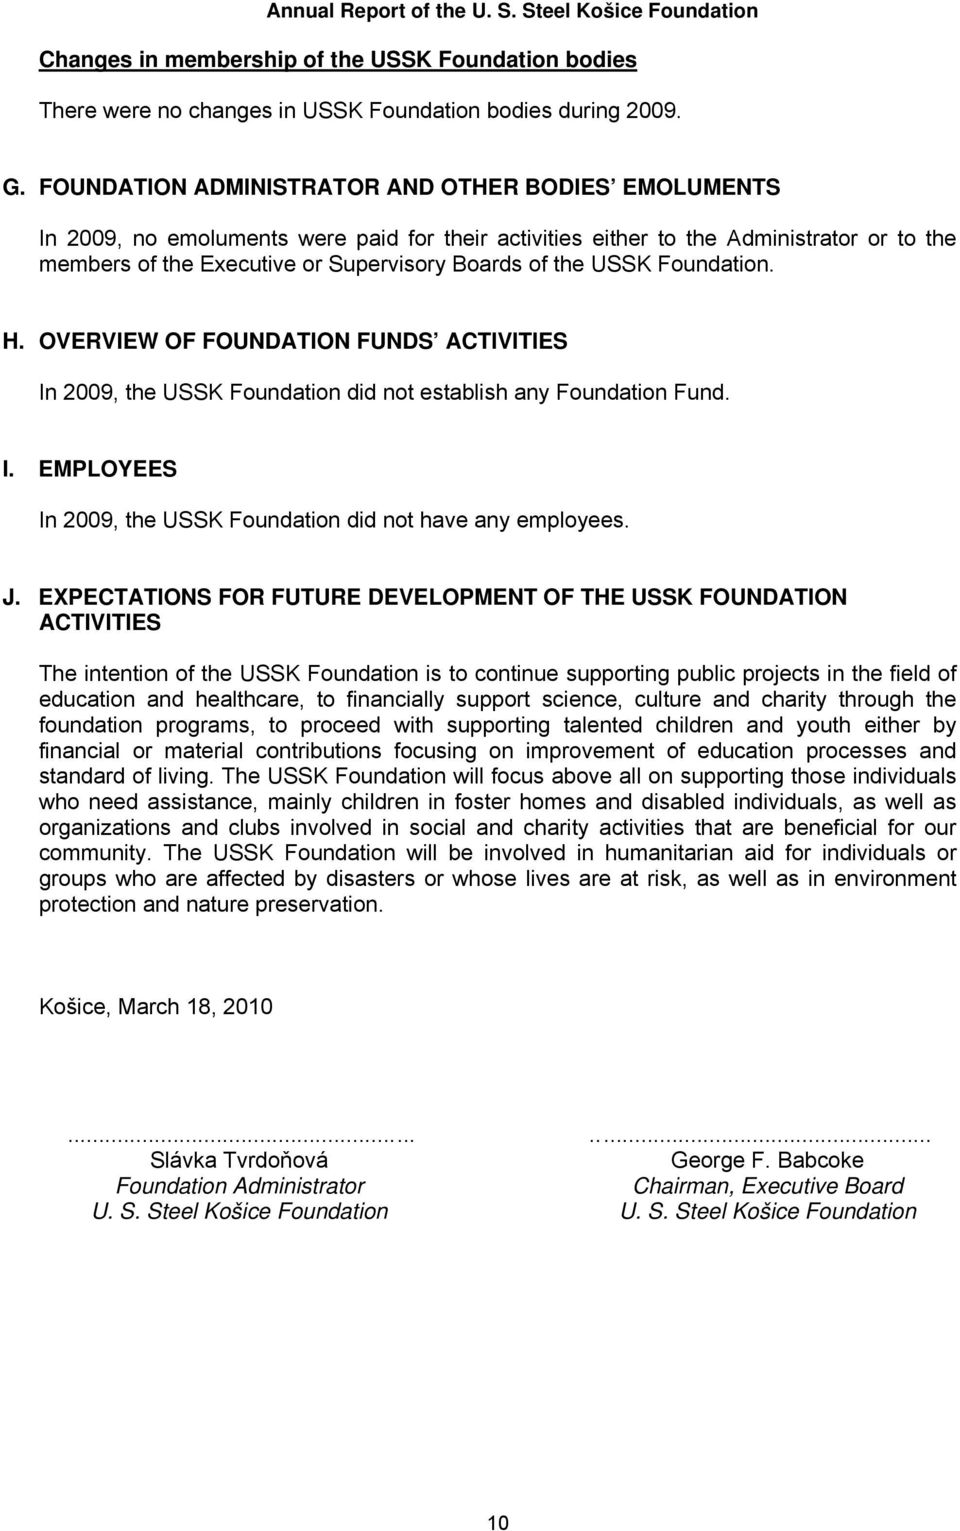 USSK Foundation. H. OVERVIEW OF FOUNDATION FUNDS ACTIVITIES In 2009, the USSK Foundation did not establish any Foundation Fund. I. EMPLOYEES In 2009, the USSK Foundation did not have any employees. J.